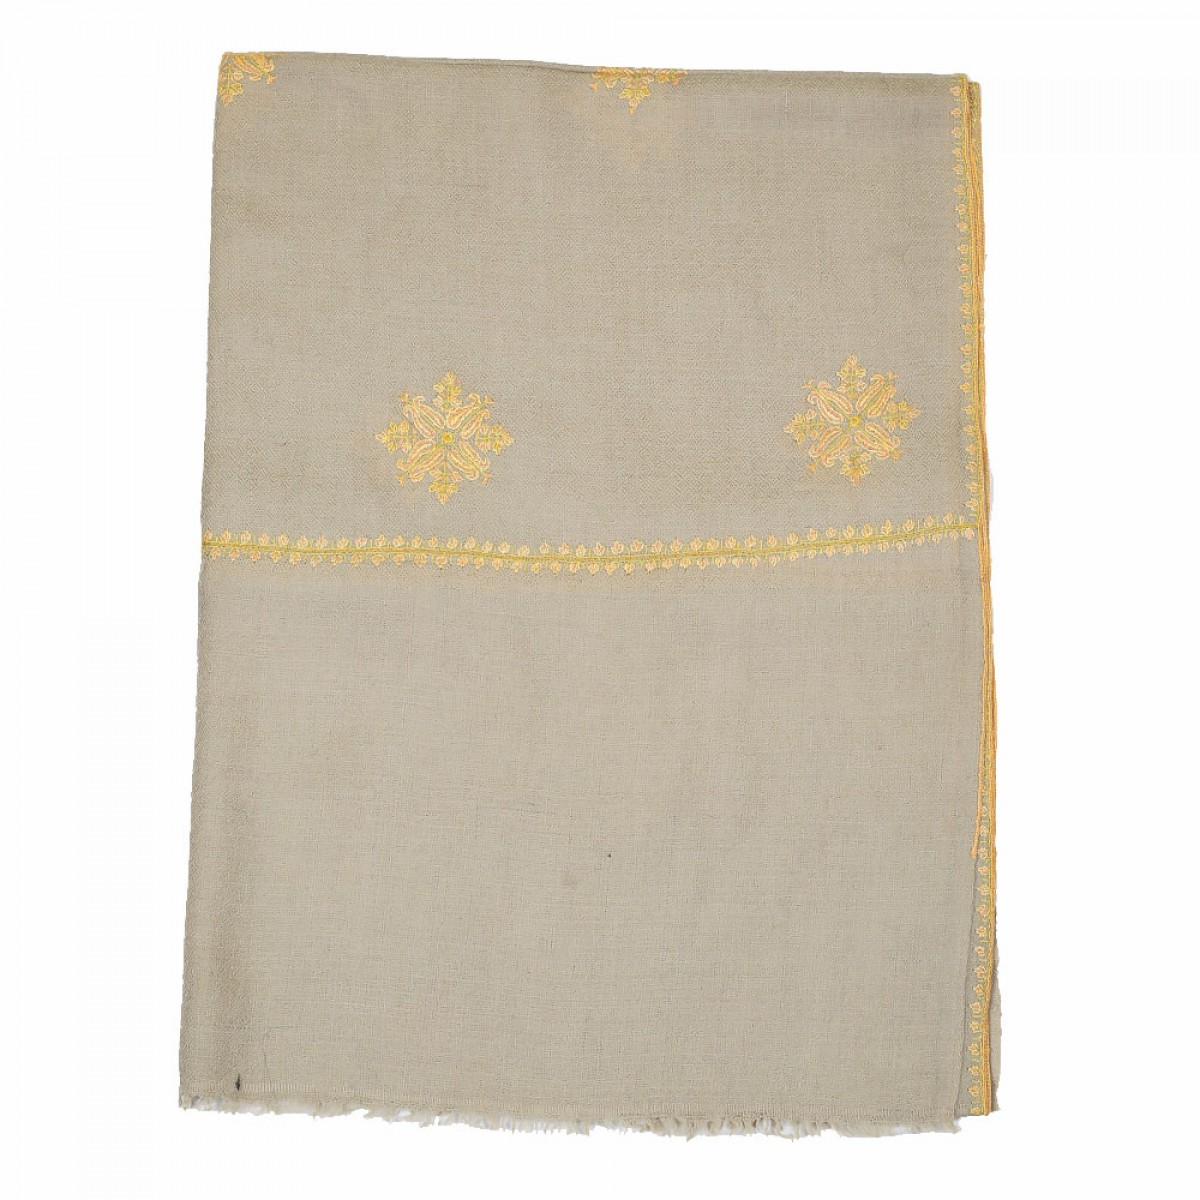 Embroidered Handloom Pashmina Stole - Oat Gold